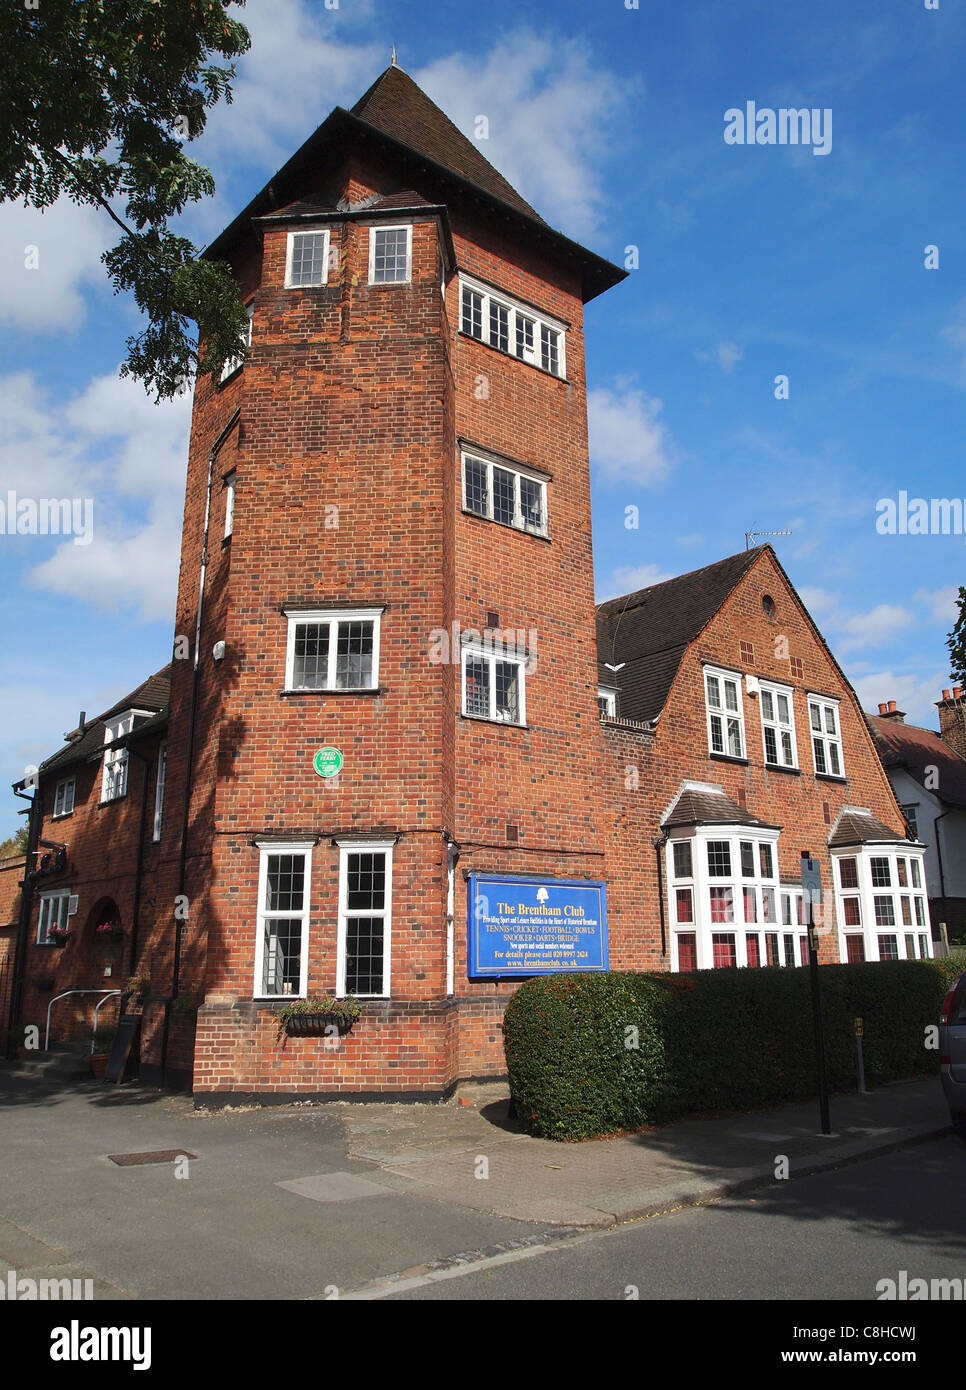 The clubhouse building, Brentham Club, Ealing, part of Britain's first planned garden suburb - Fred Perry played - Stock Image